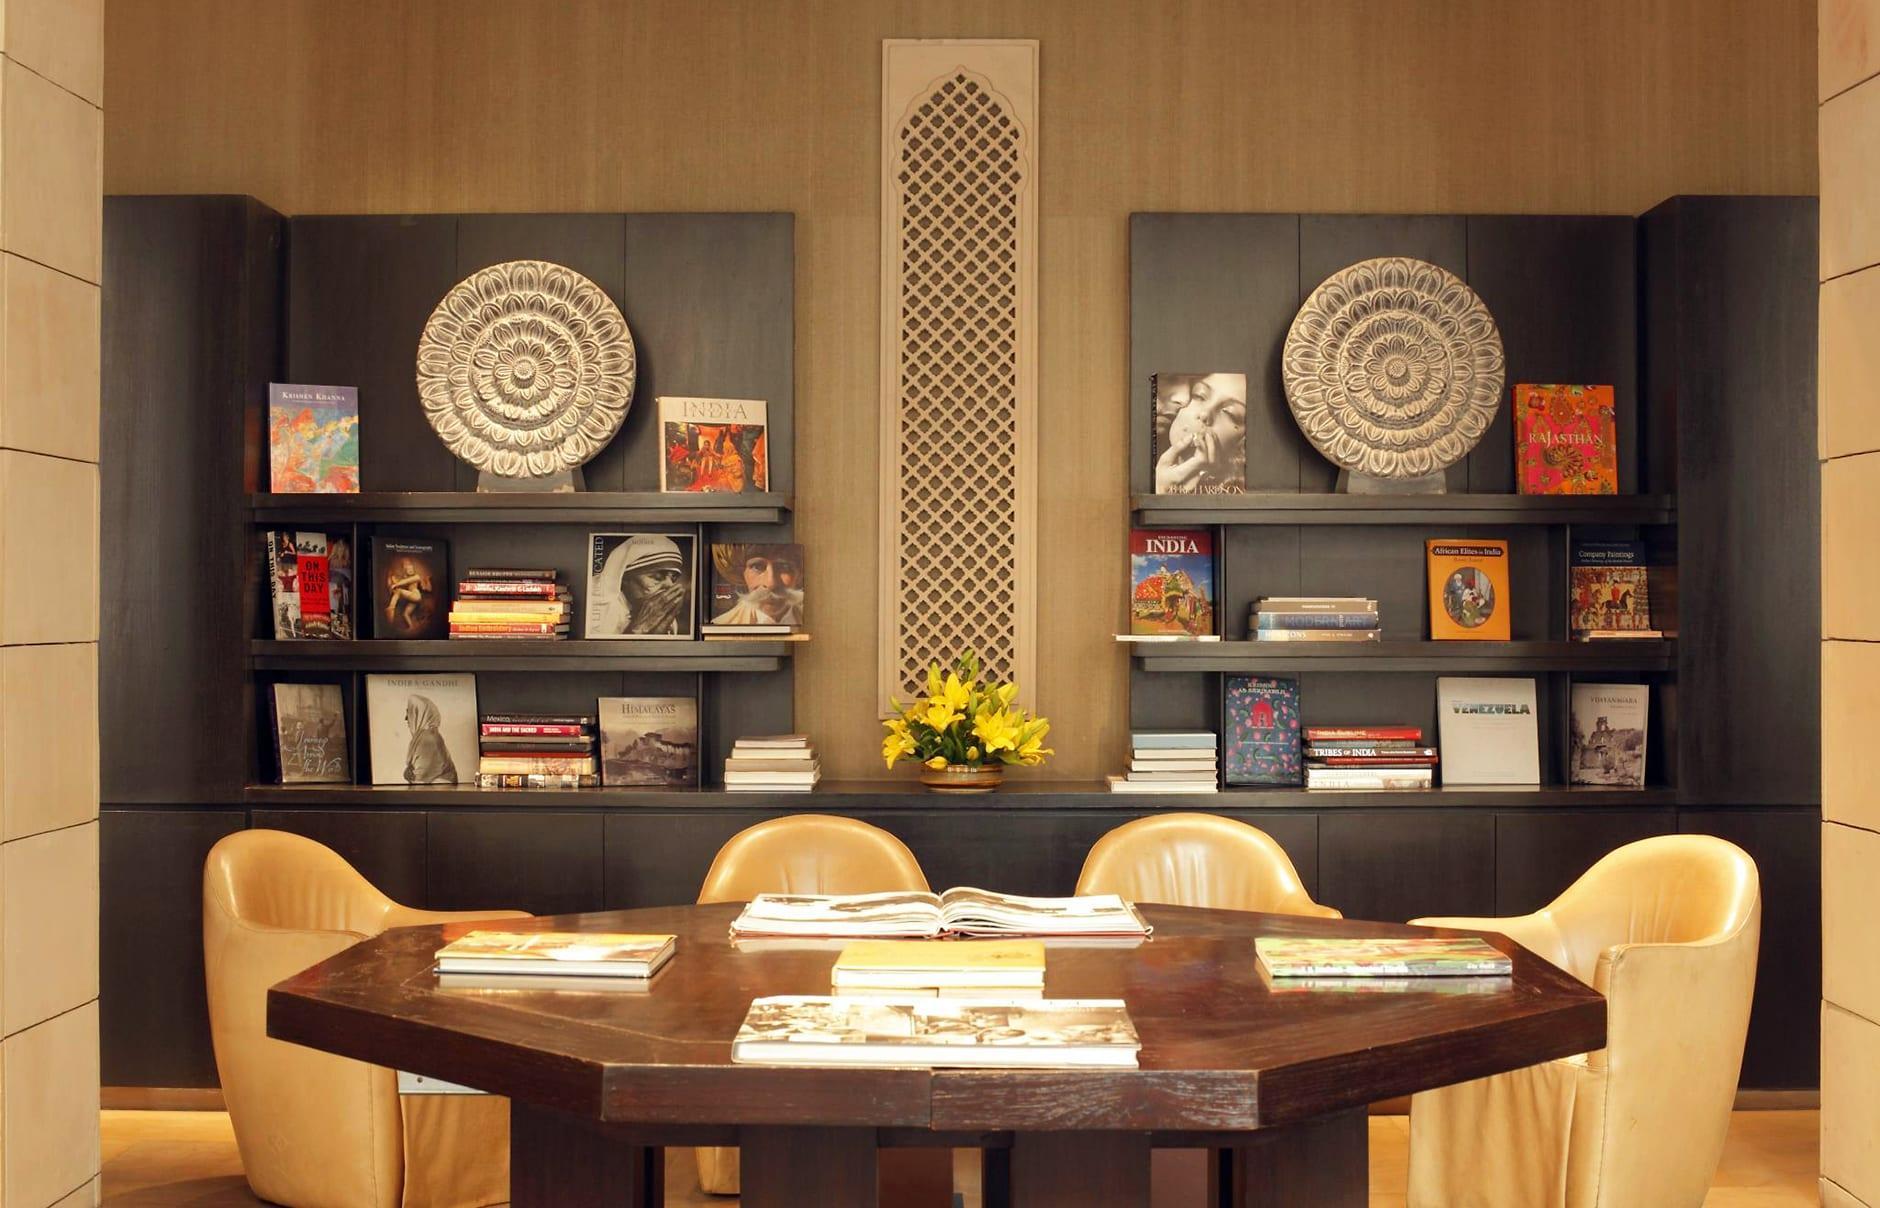 The Library. The Lodhi, New Delhi, India. Hotel Review by TravelPlusStyle. Photo © The Lodhi